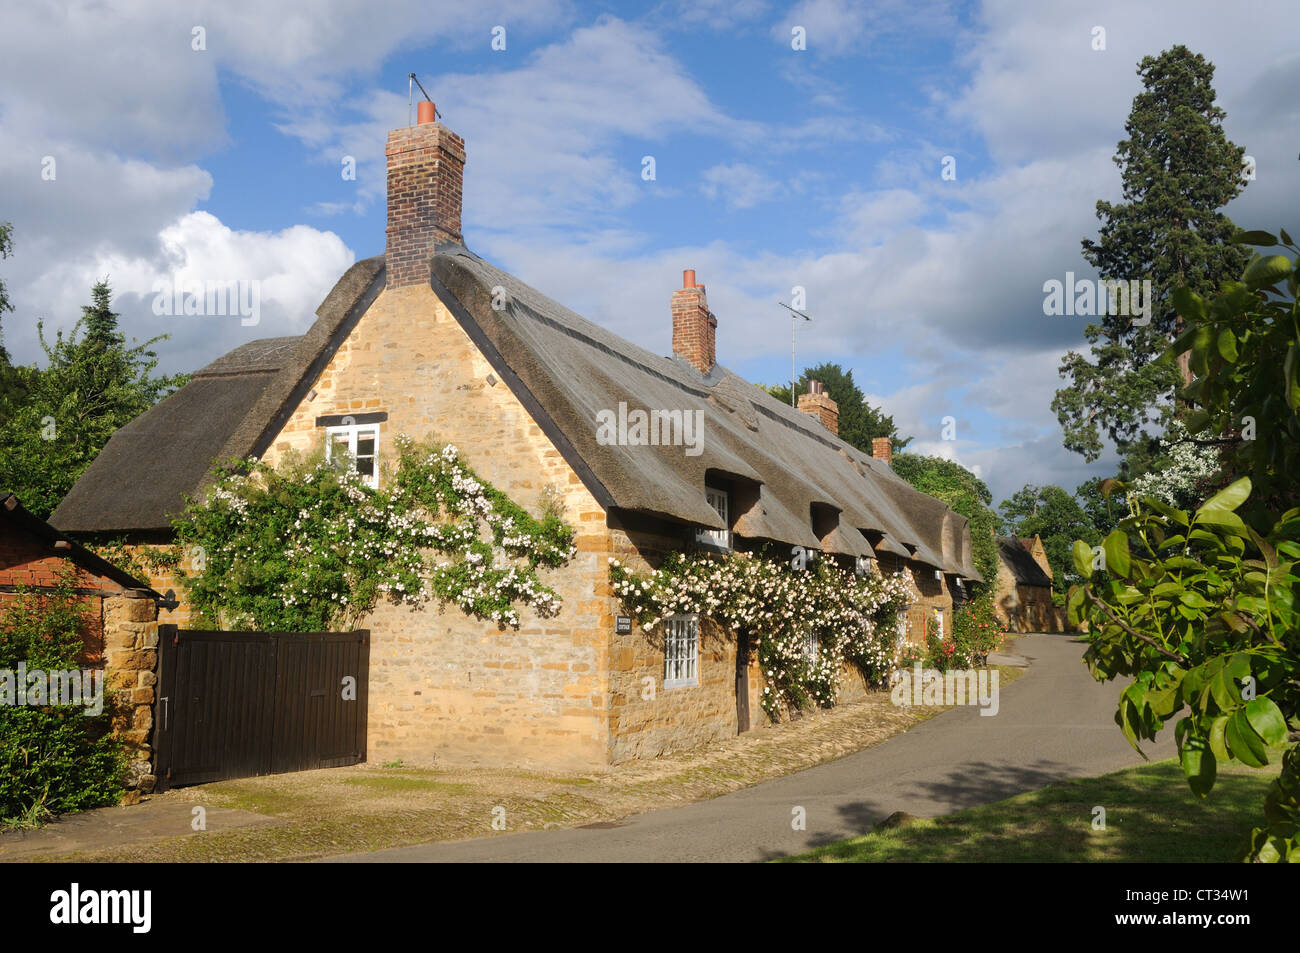 Cottages in Brockhall, Northamptonshire, England - Stock Image